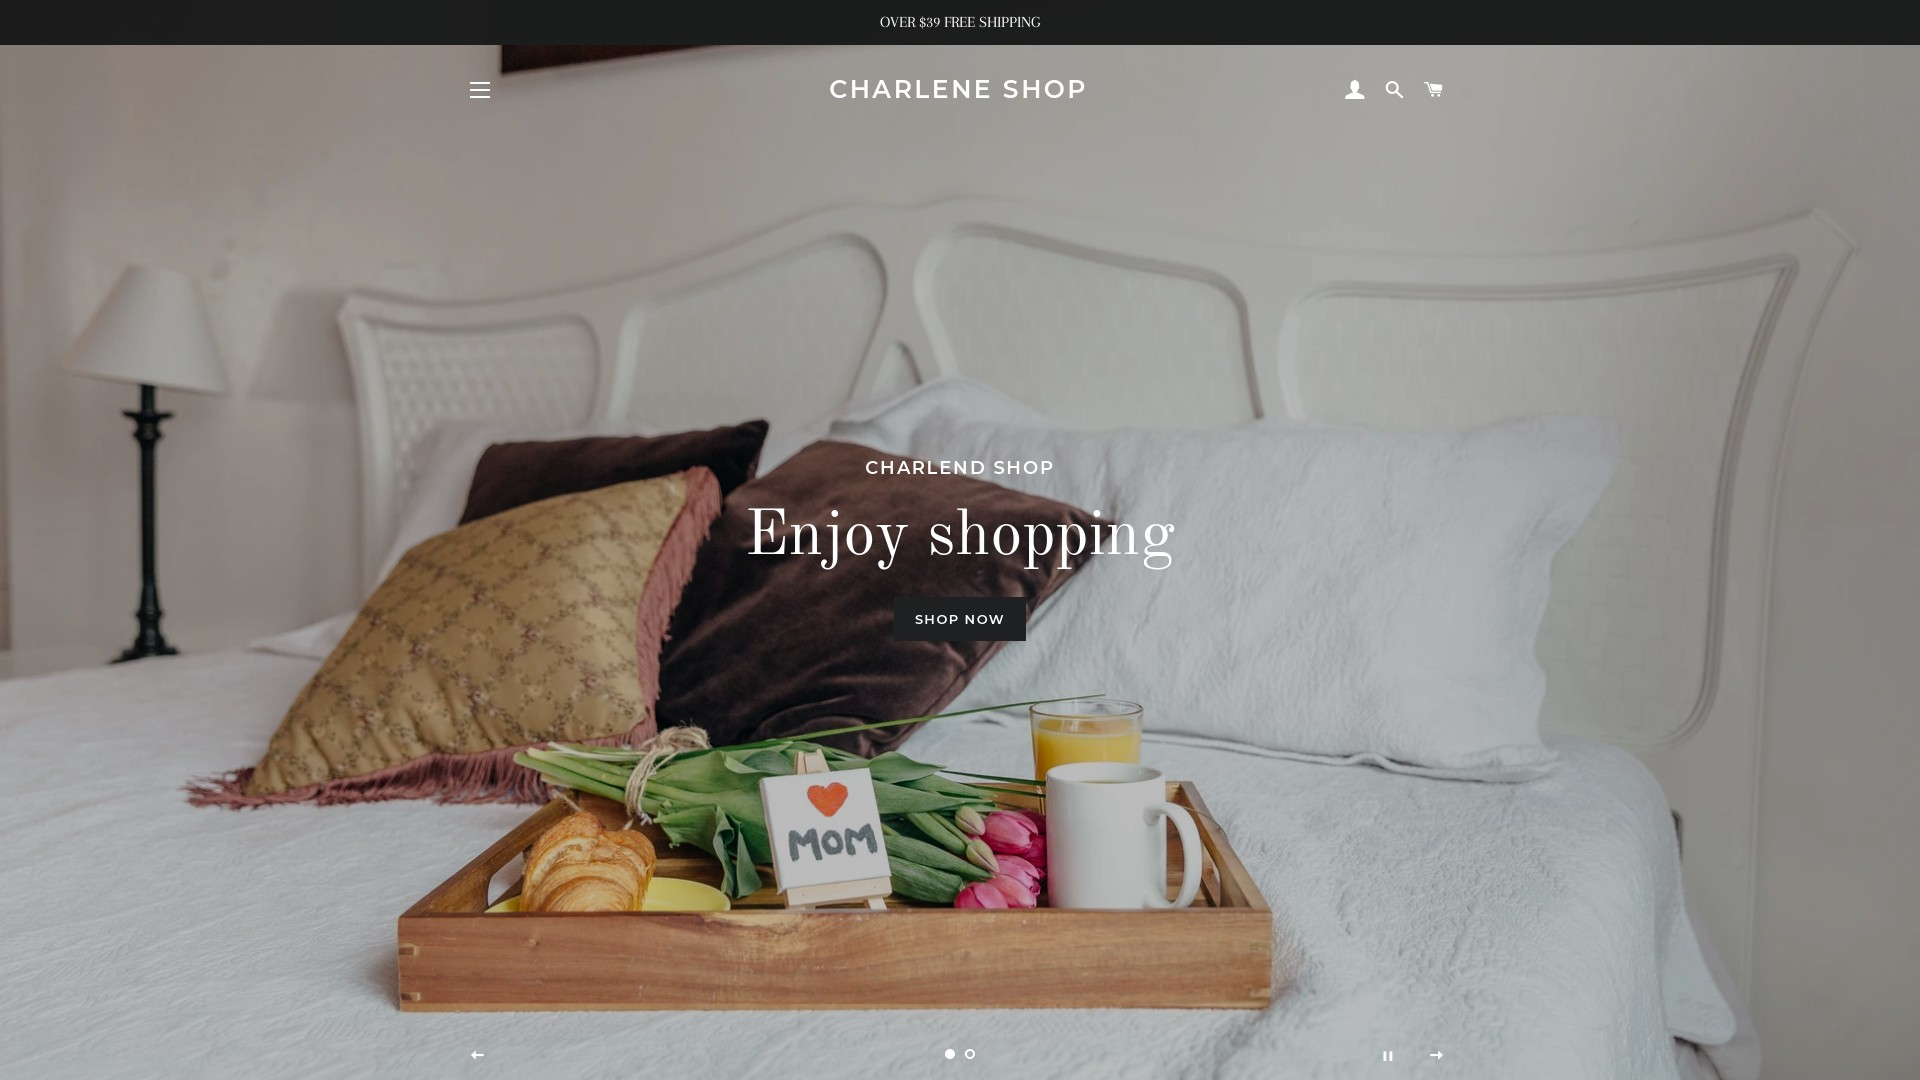 Is Charleneo a Scam? See the Review of the Online Store